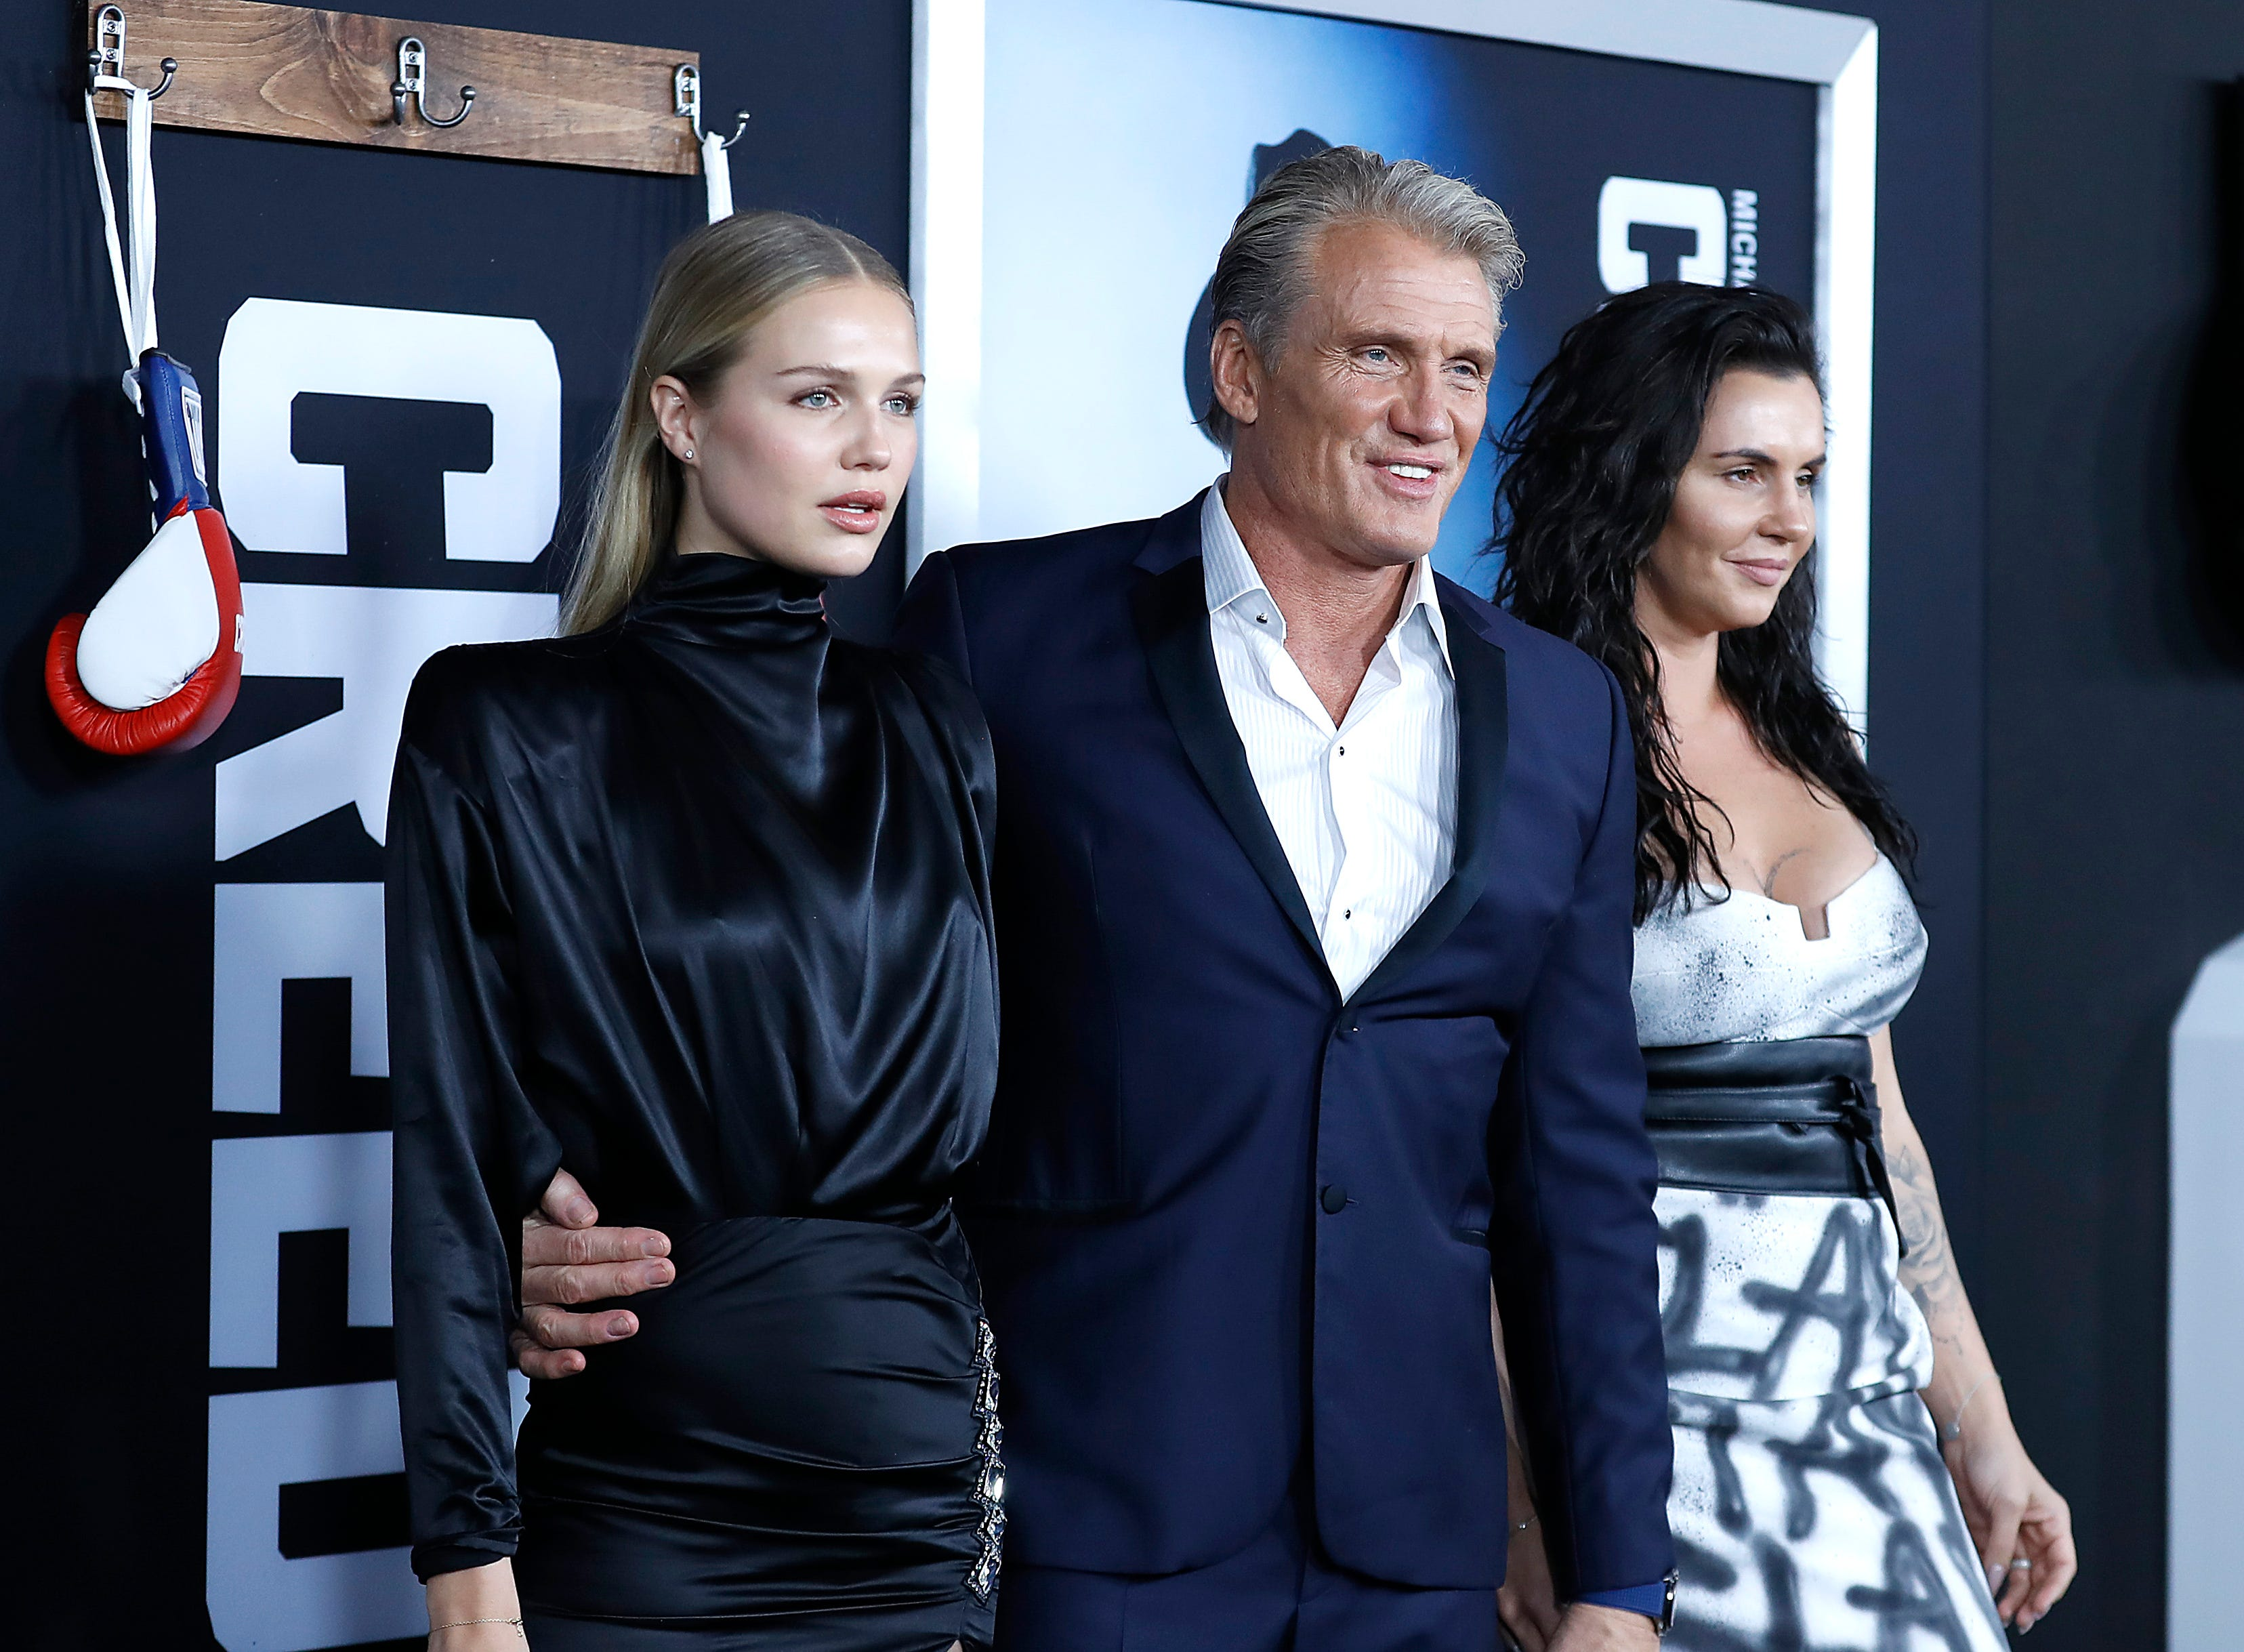 """NEW YORK, NEW YORK - NOVEMBER 14: Ida Lundgren, Dolph Lundgren, Jenny Sandersson attends """"Creed II"""" New York Premiere at AMC Loews Lincoln Square on November 14, 2018 in New York City. (Photo by John Lamparski/Getty Images) ORG XMIT: 775258752 ORIG FILE ID: 1067751696"""